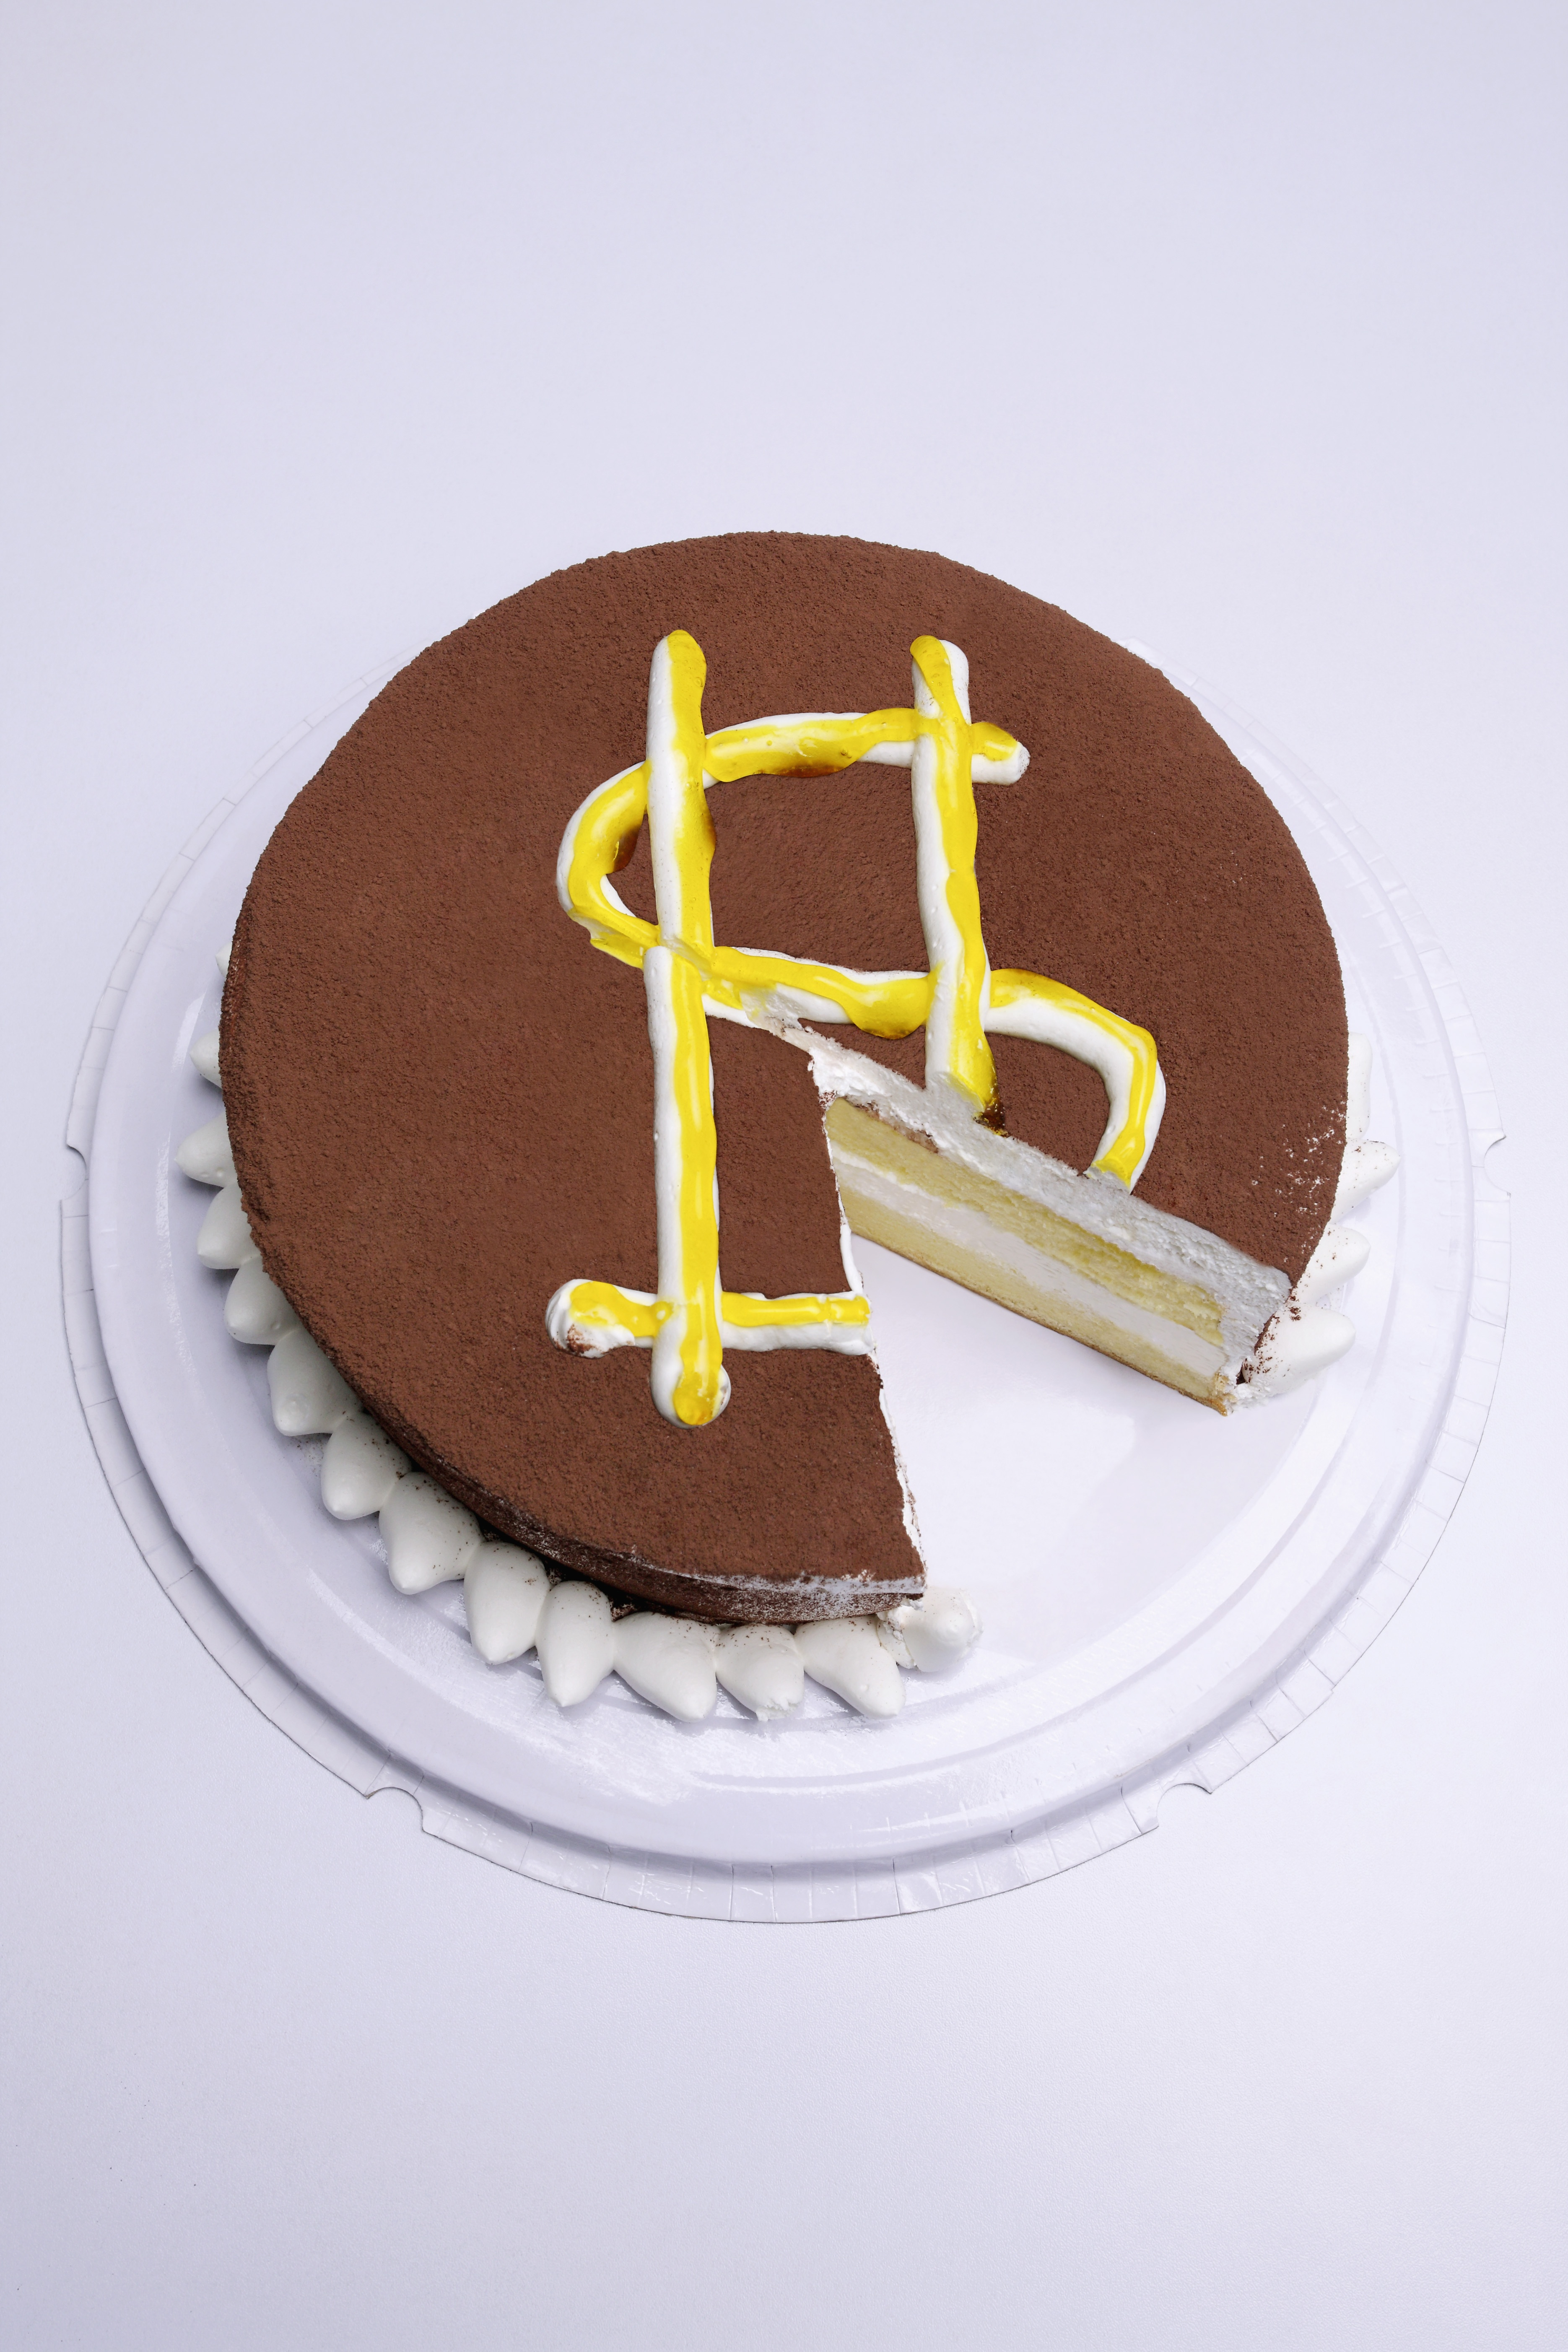 cake with missing piece and missing dollar sign